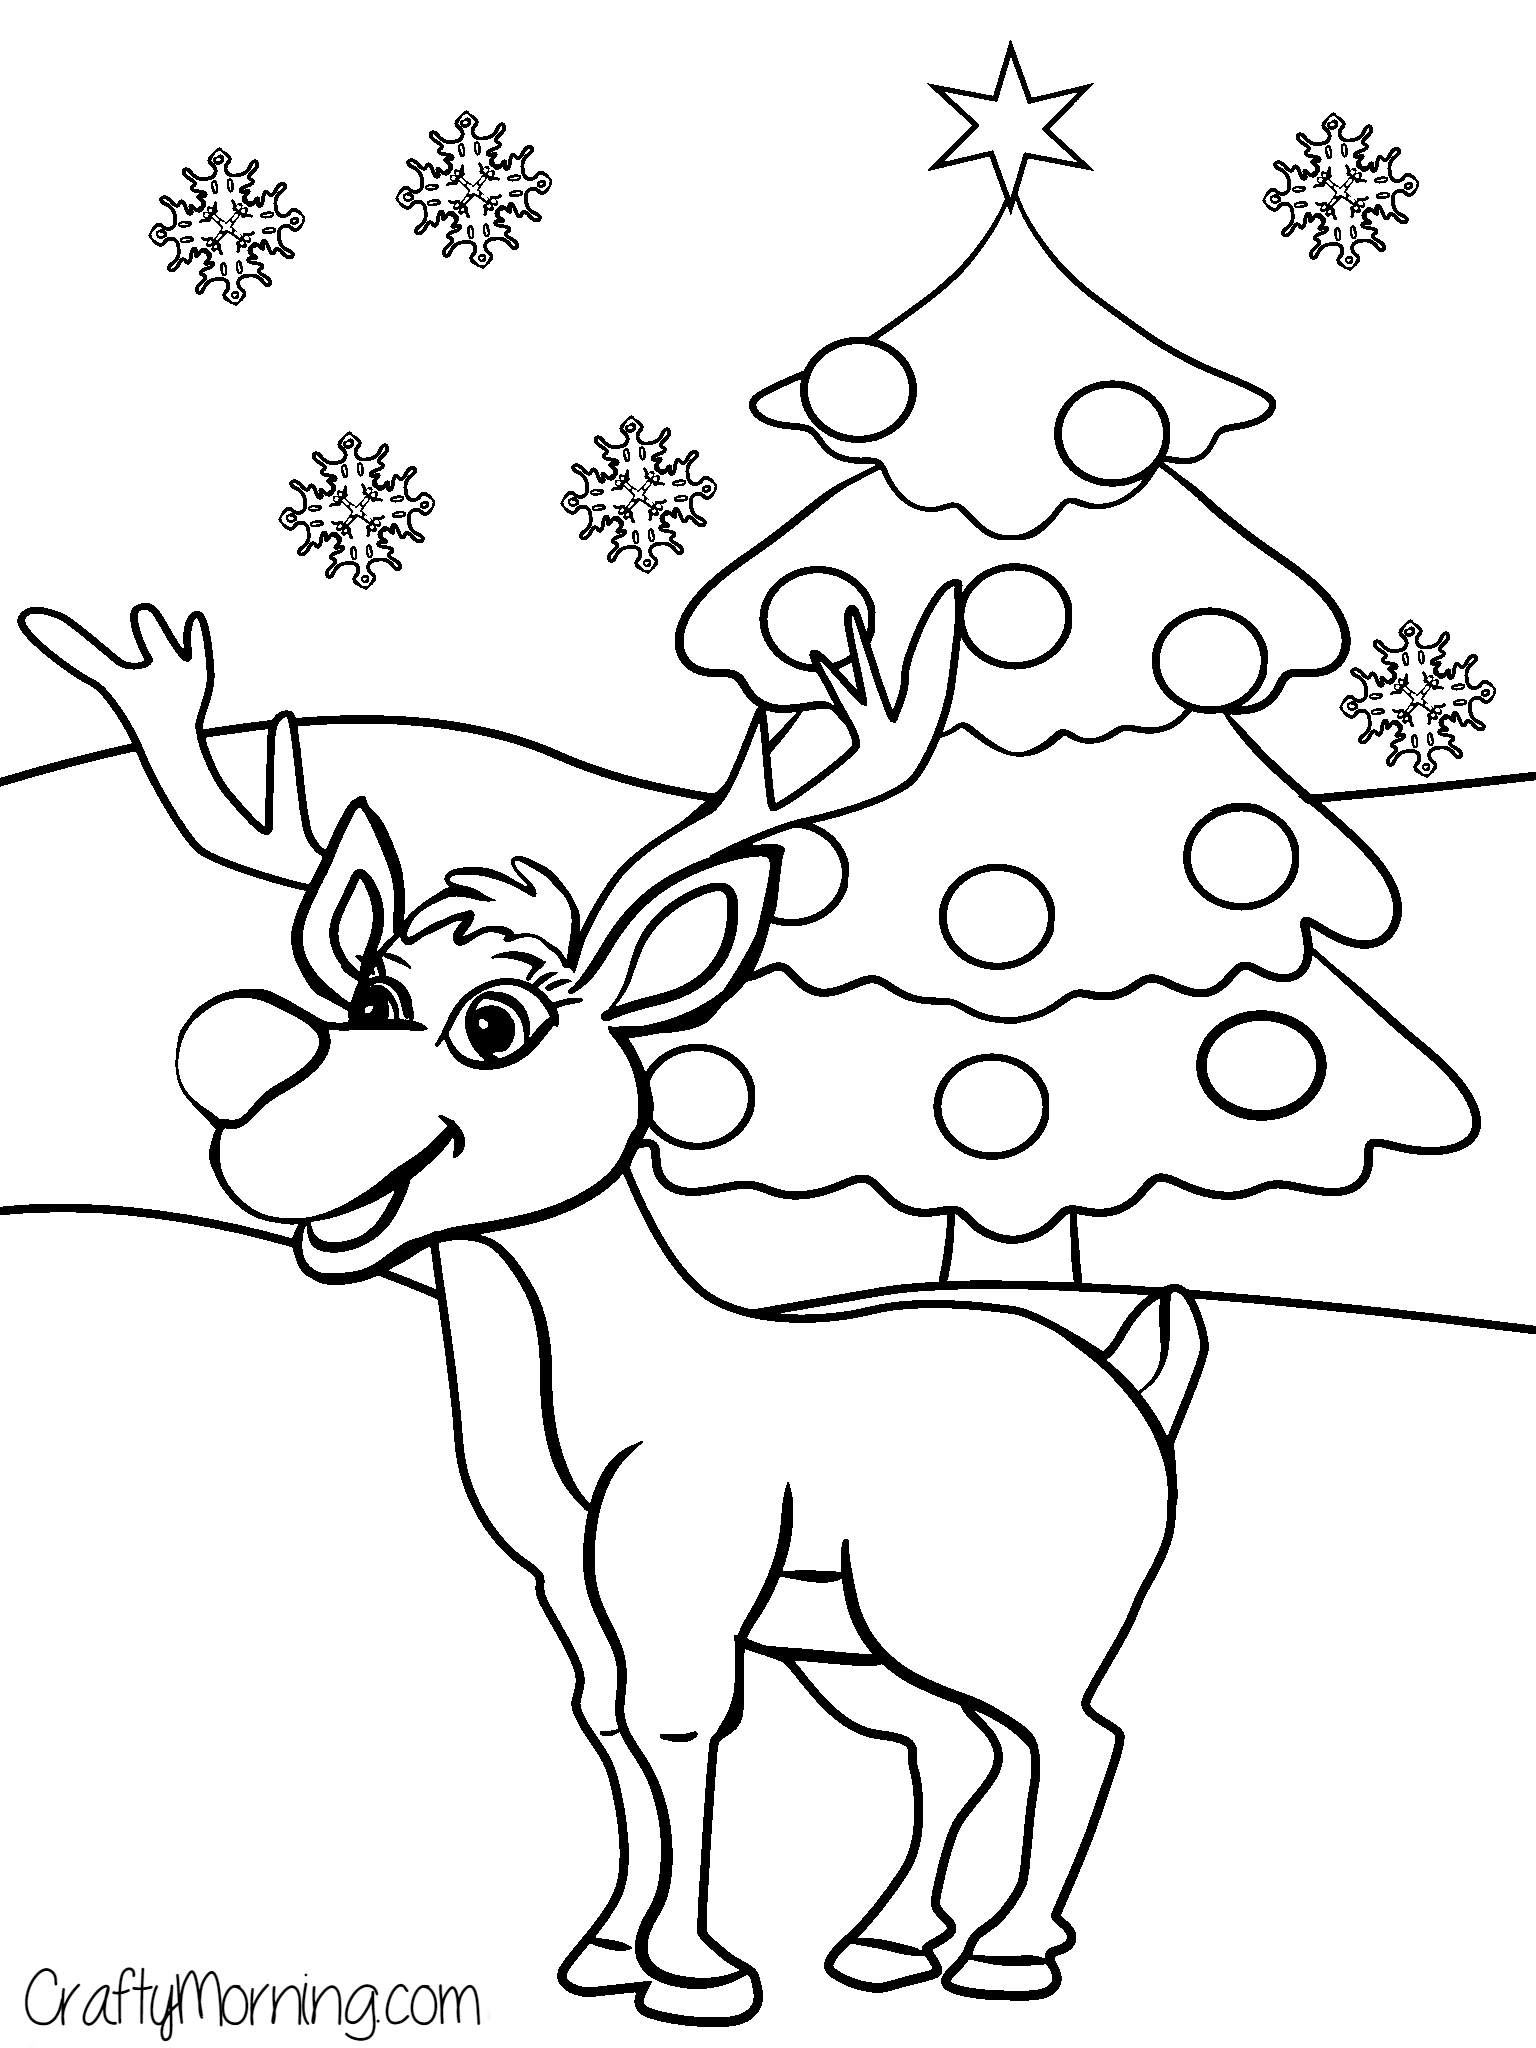 1536x2048 Christmas Tree Reindeer Coloring Pages Gallery Coloring For Kids